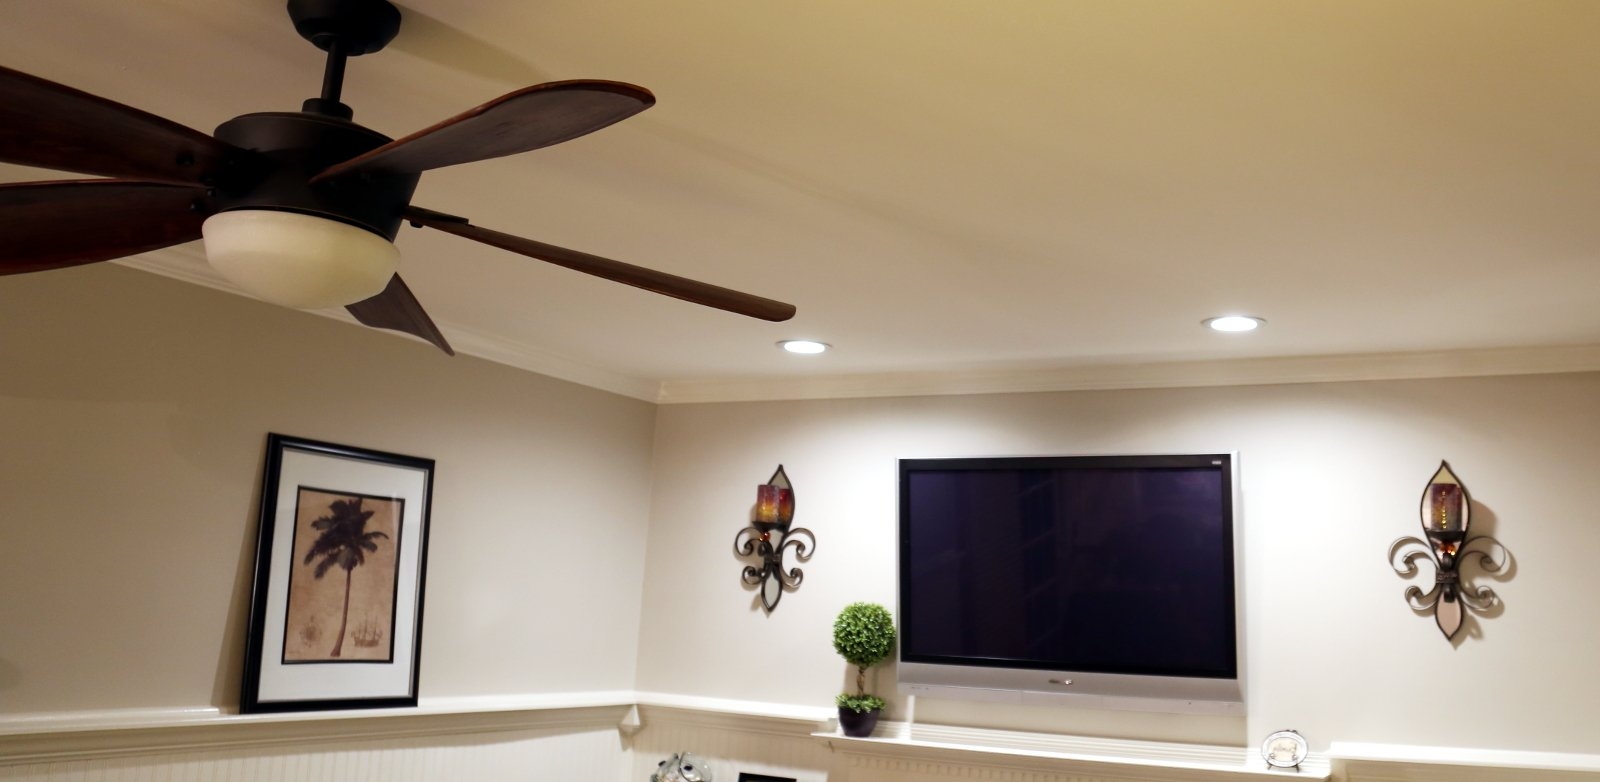 best Electricians in Crofton to finish basement